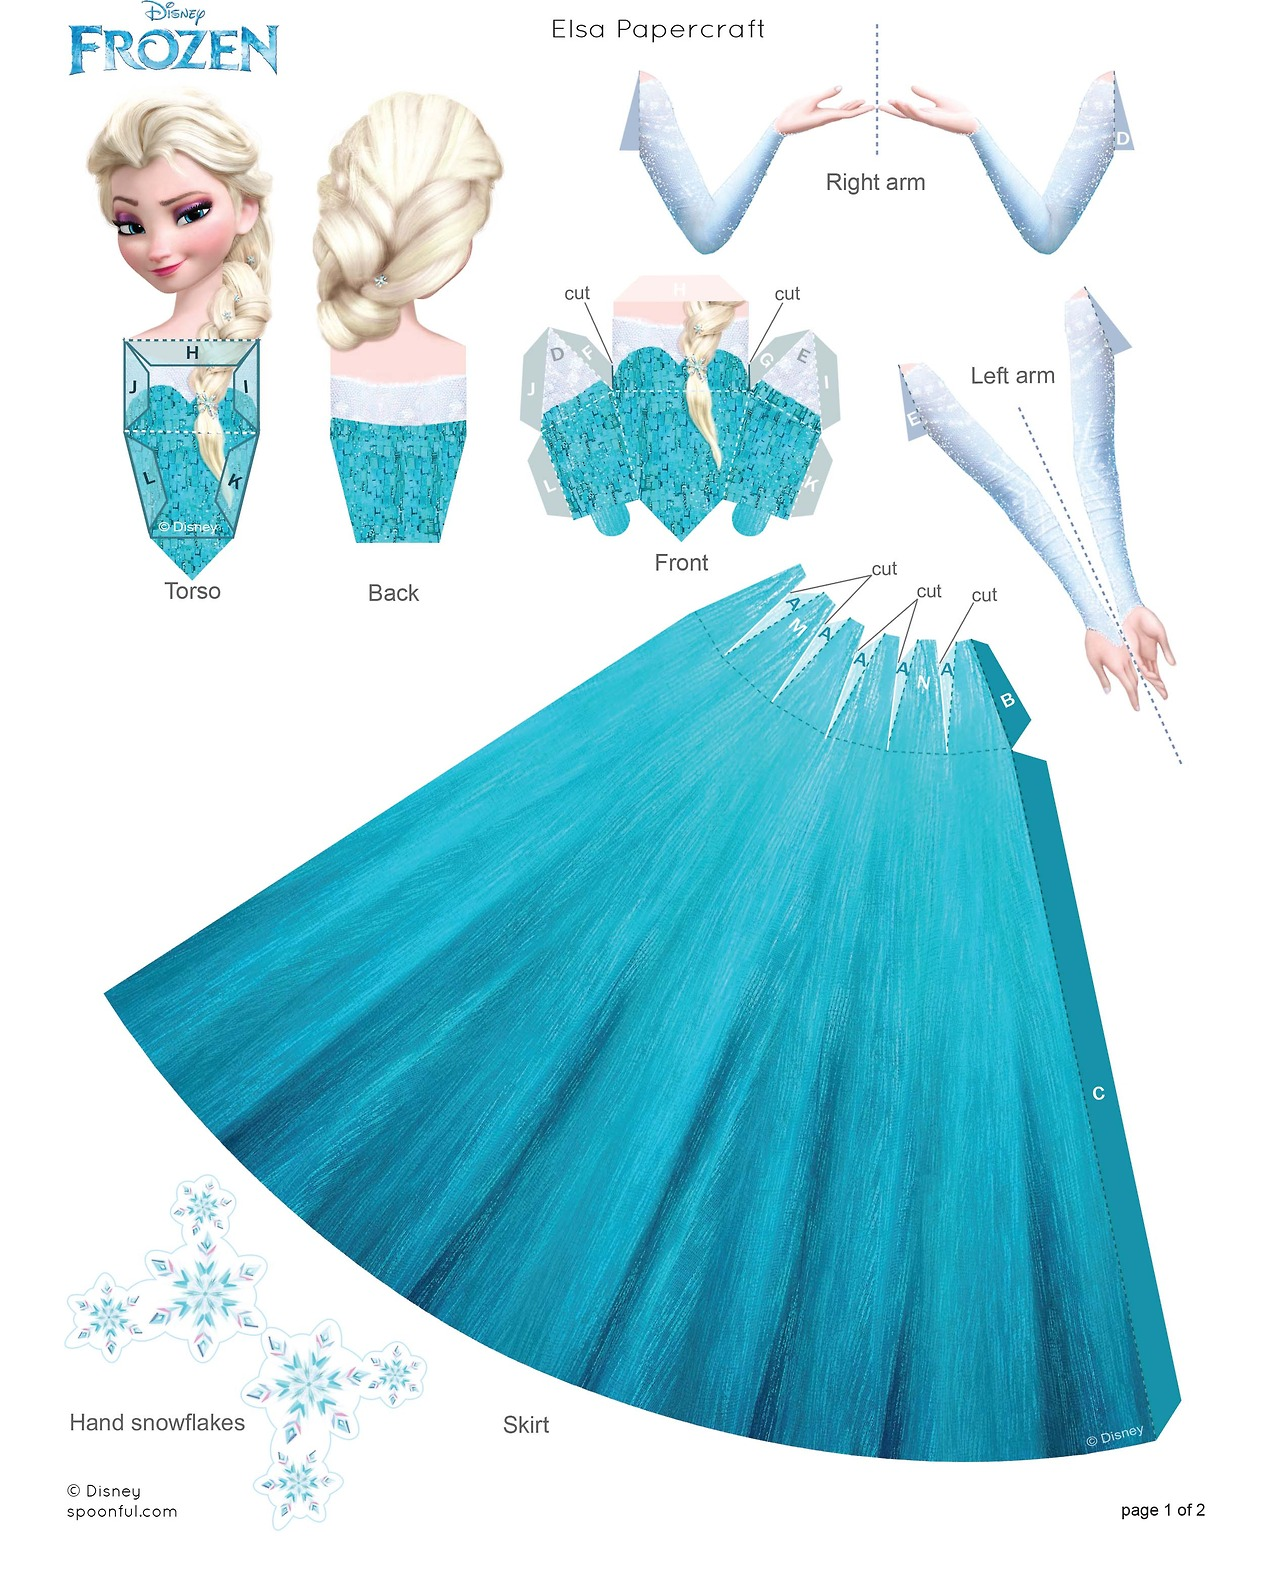 Elsa papercraft la reine des neiges photo 35801187 - Rein des neig ...